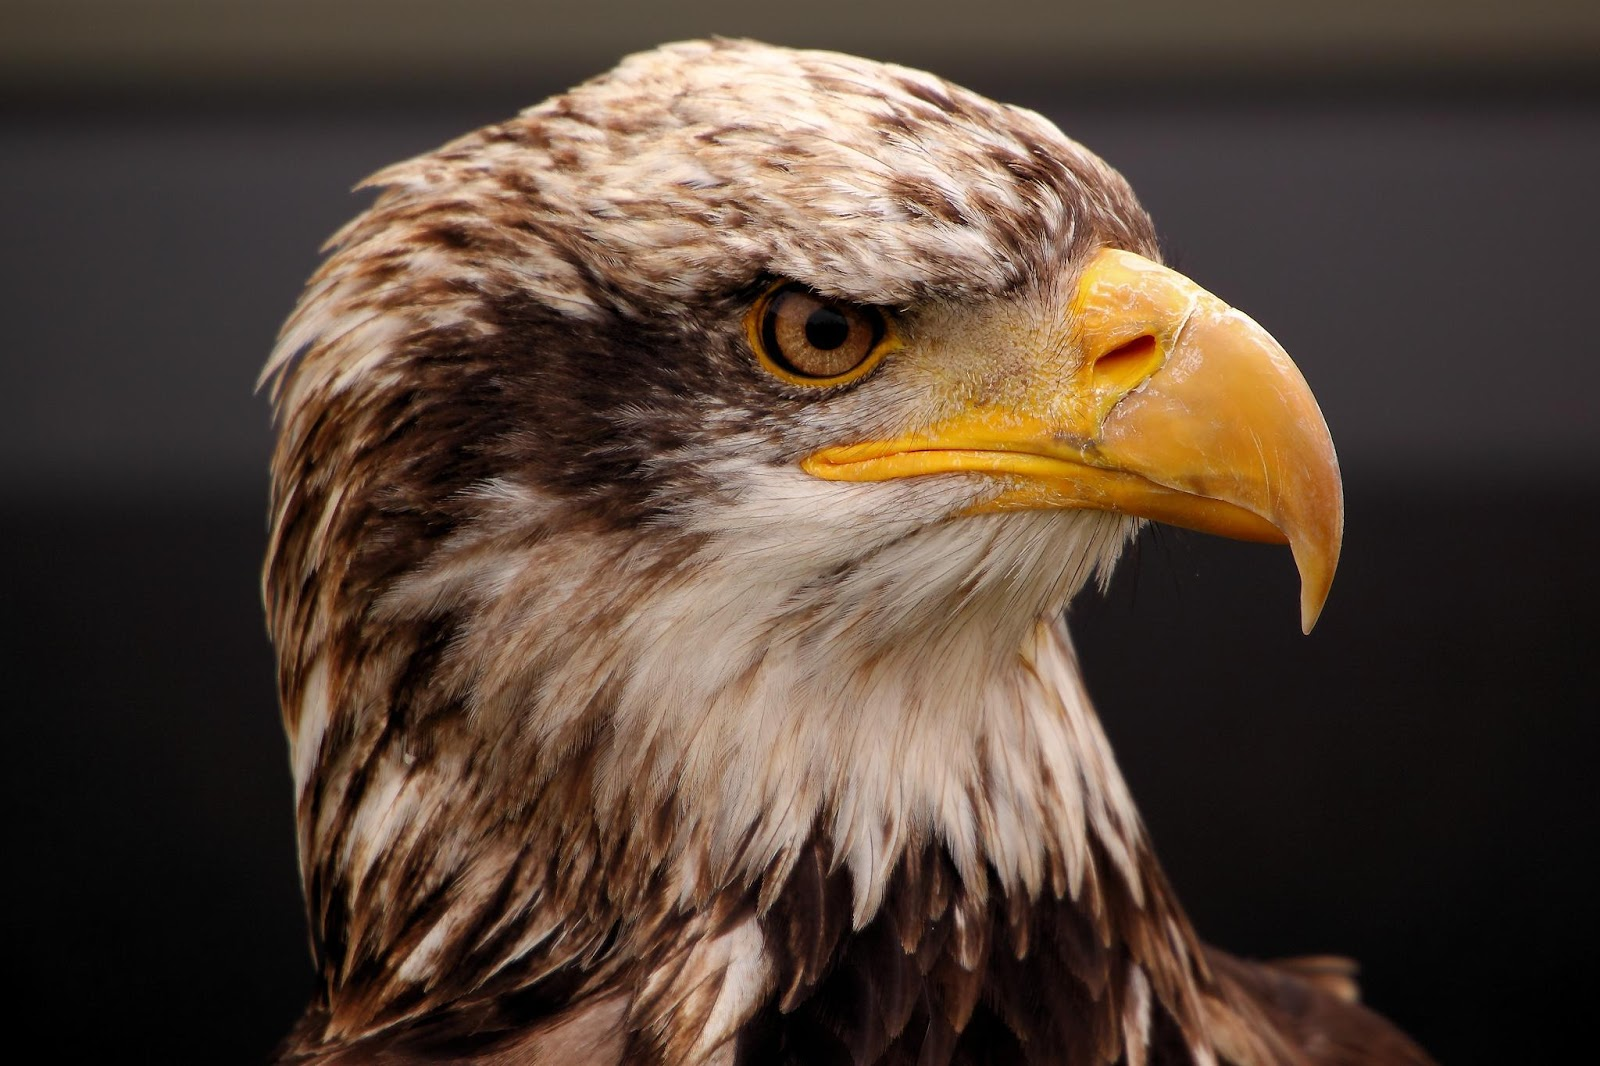 Comfort Negedu: LEARN FROM EAGLES